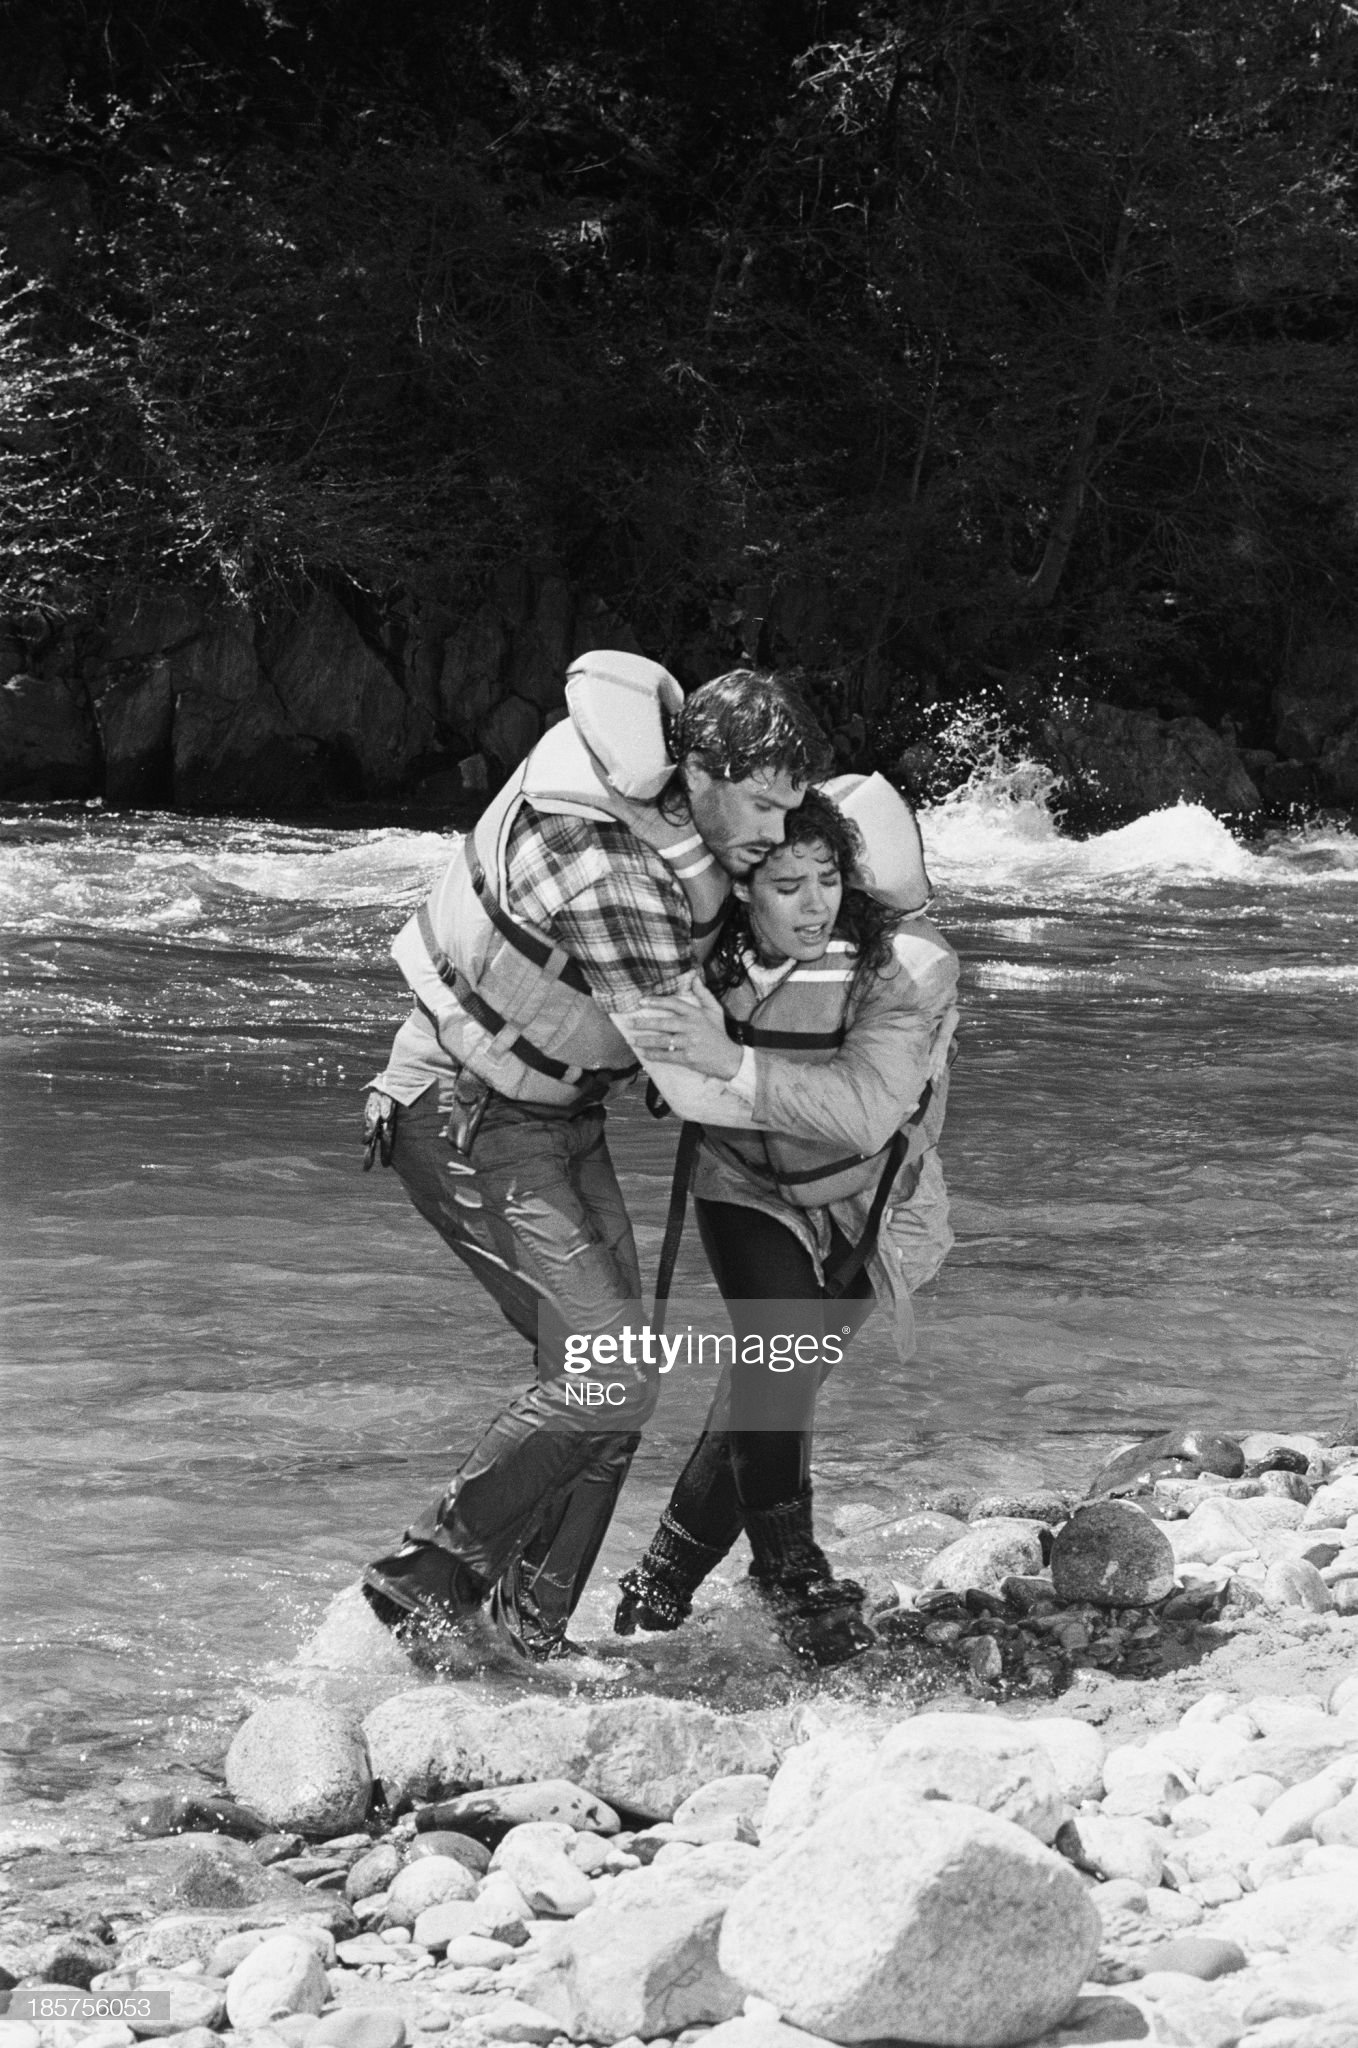 kern-river-pictured-peter-reckell-as-bo-brady-kristian-alfonso-as-picture-id185756053